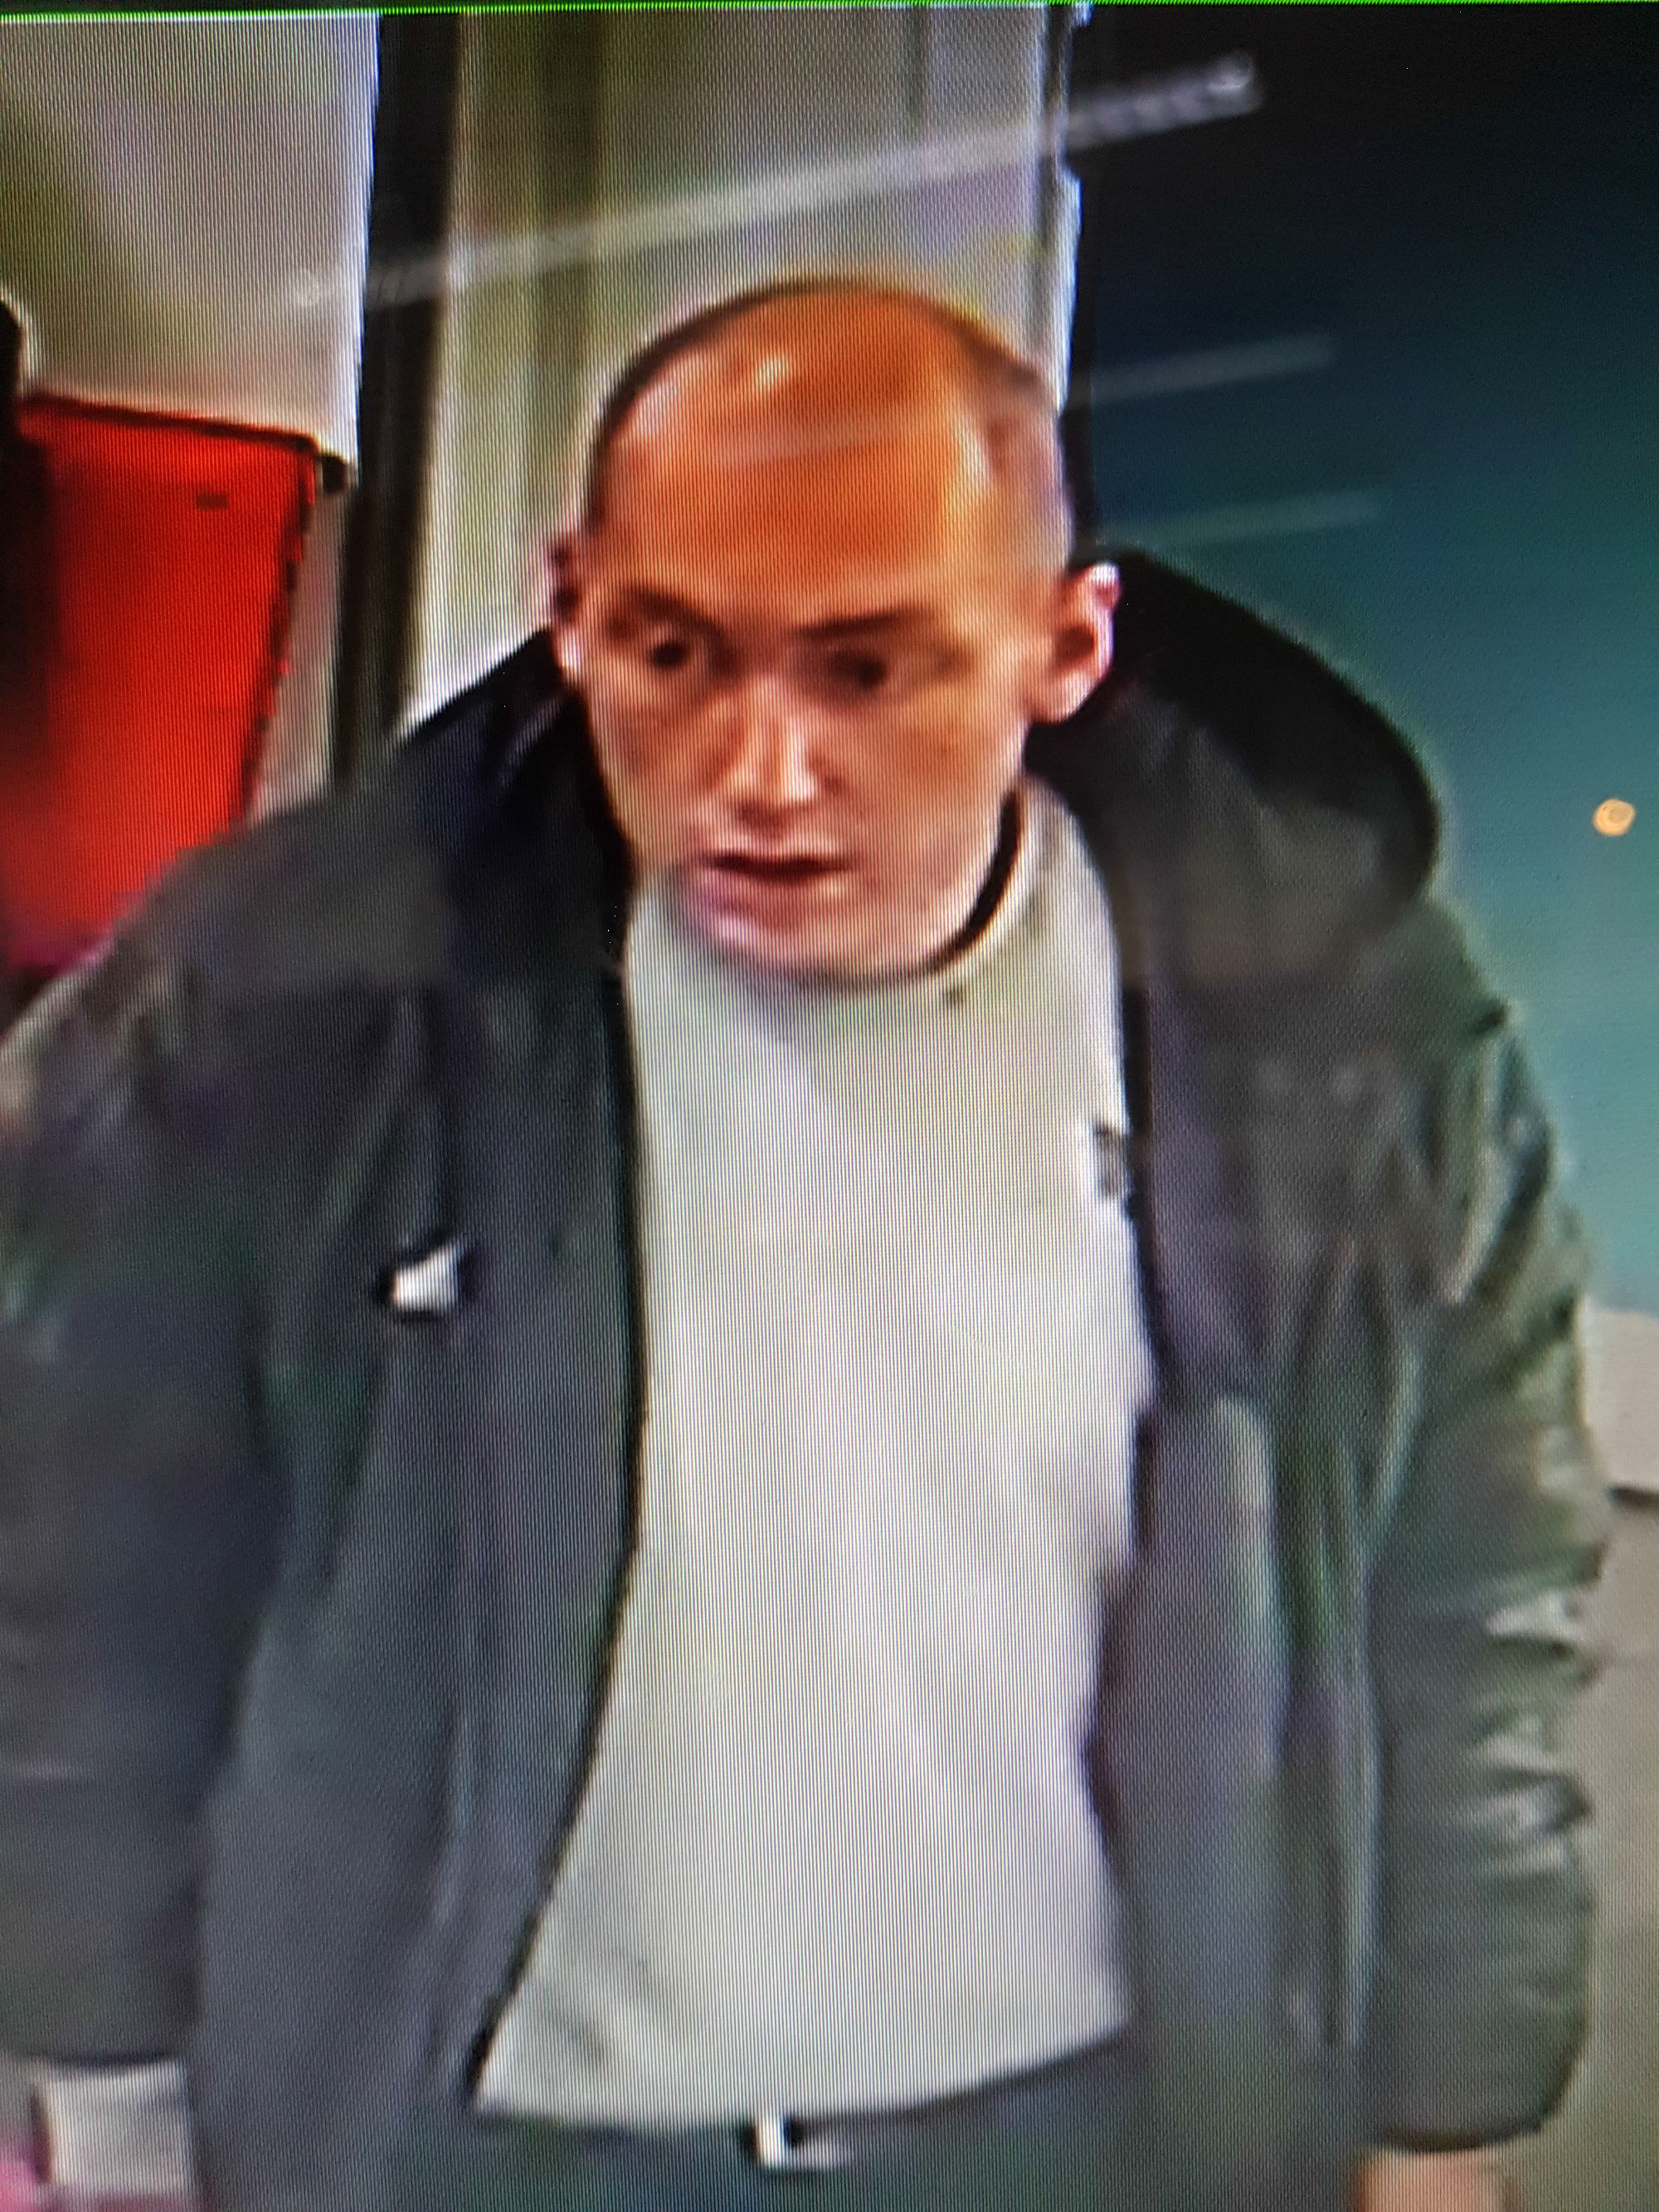 Police want to identify this man